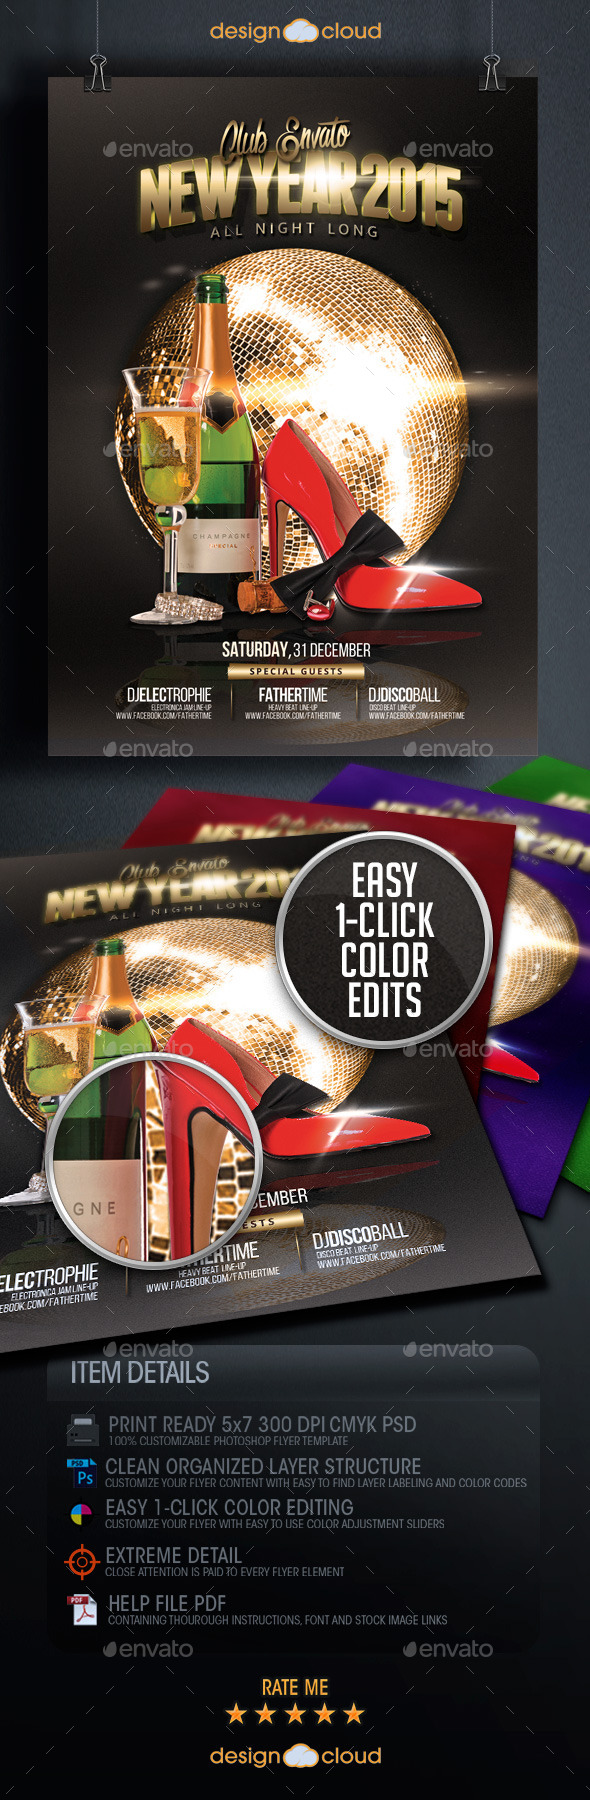 New Year's Event Flyer Template Vol. 2 - Holidays Events